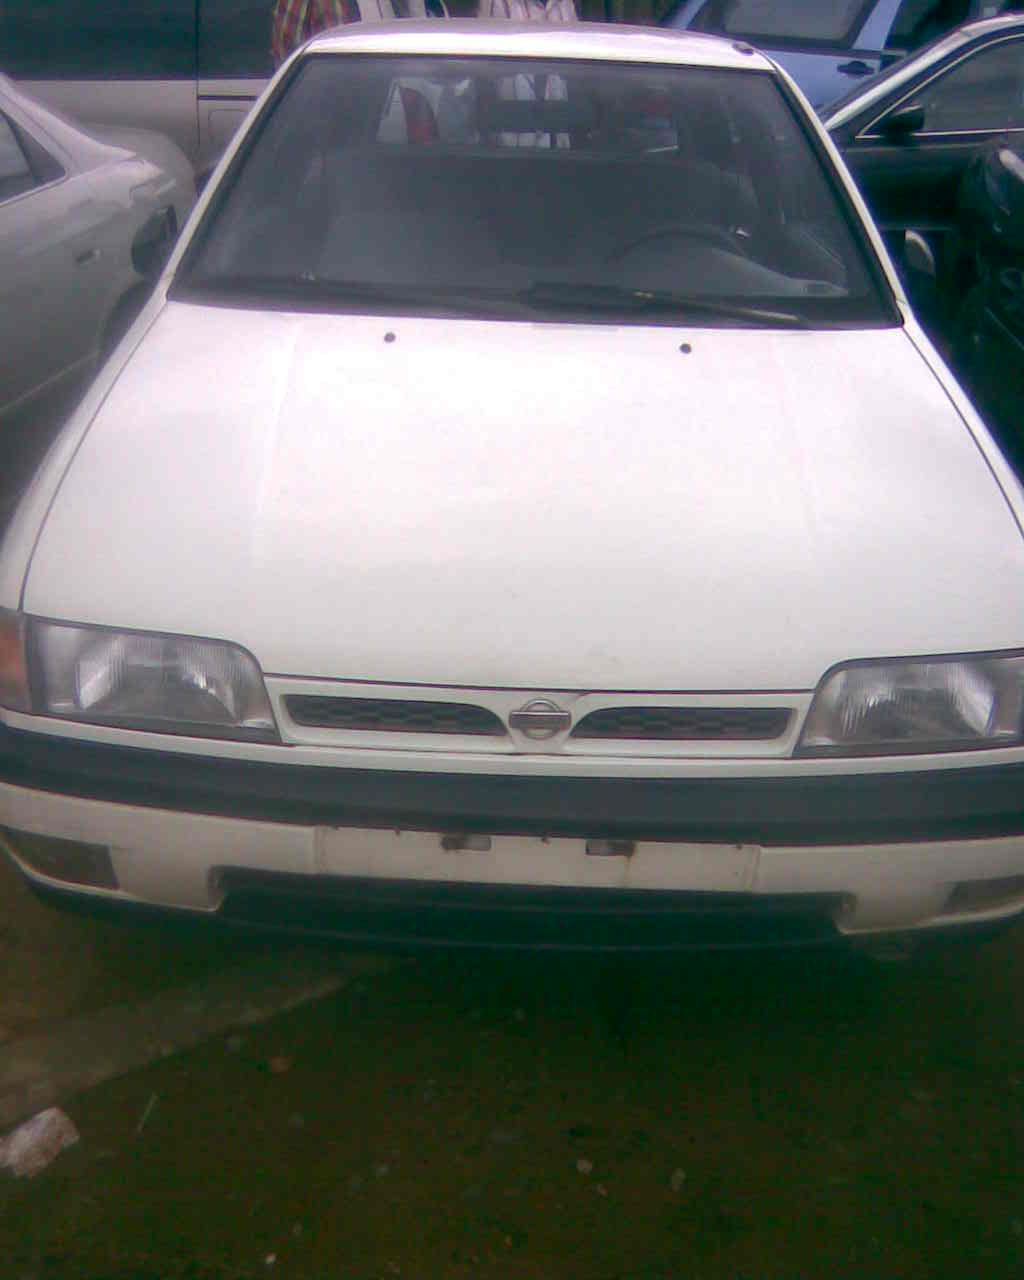 Tokumbo Nissan Sunny,two Doors,factory A/c For Sale  - Autos - Nigeria